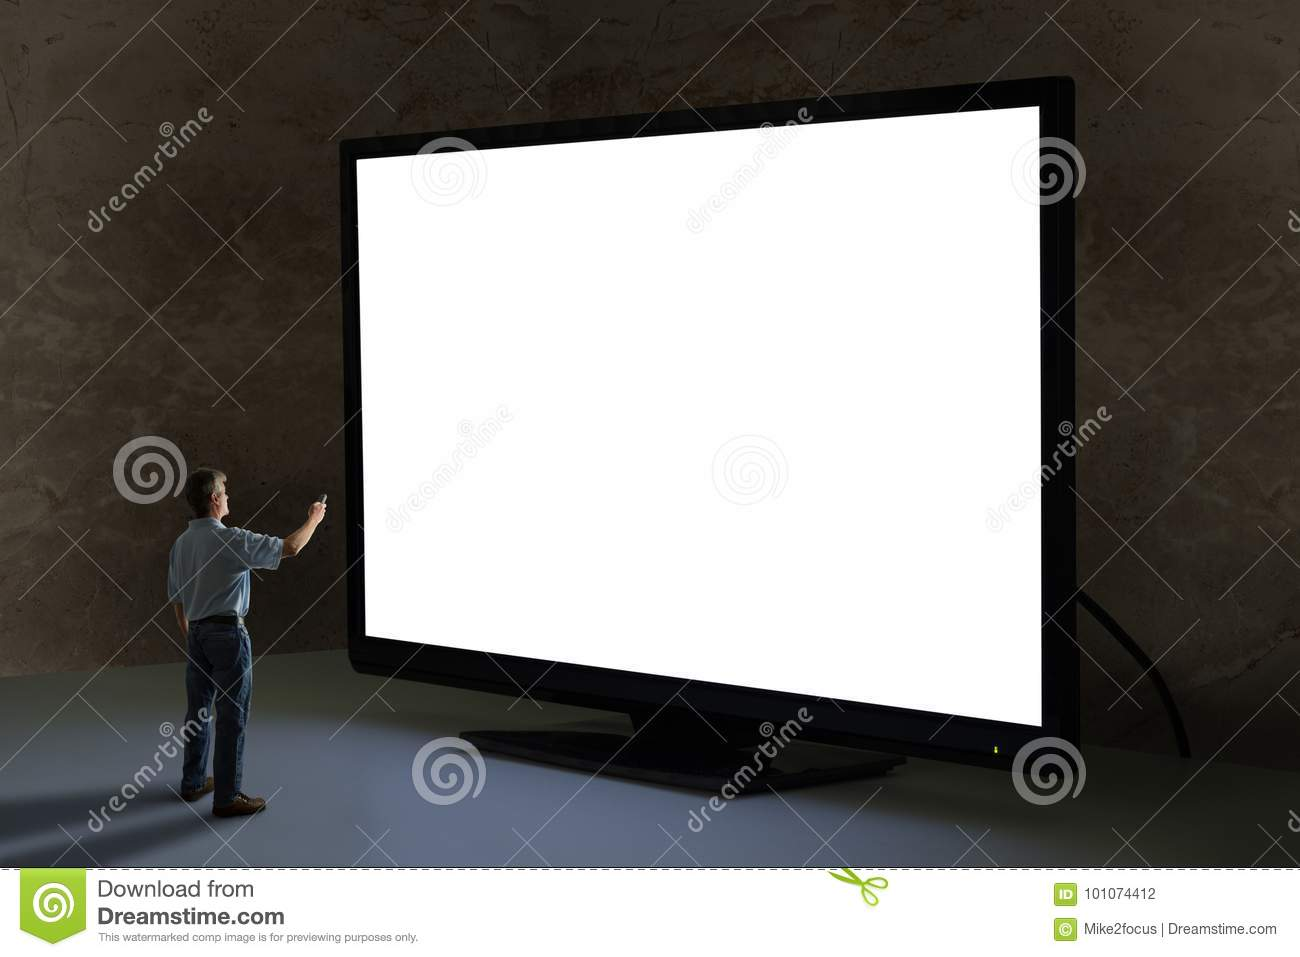 Man pointing tv remote control at world's biggest giant television with blank screen